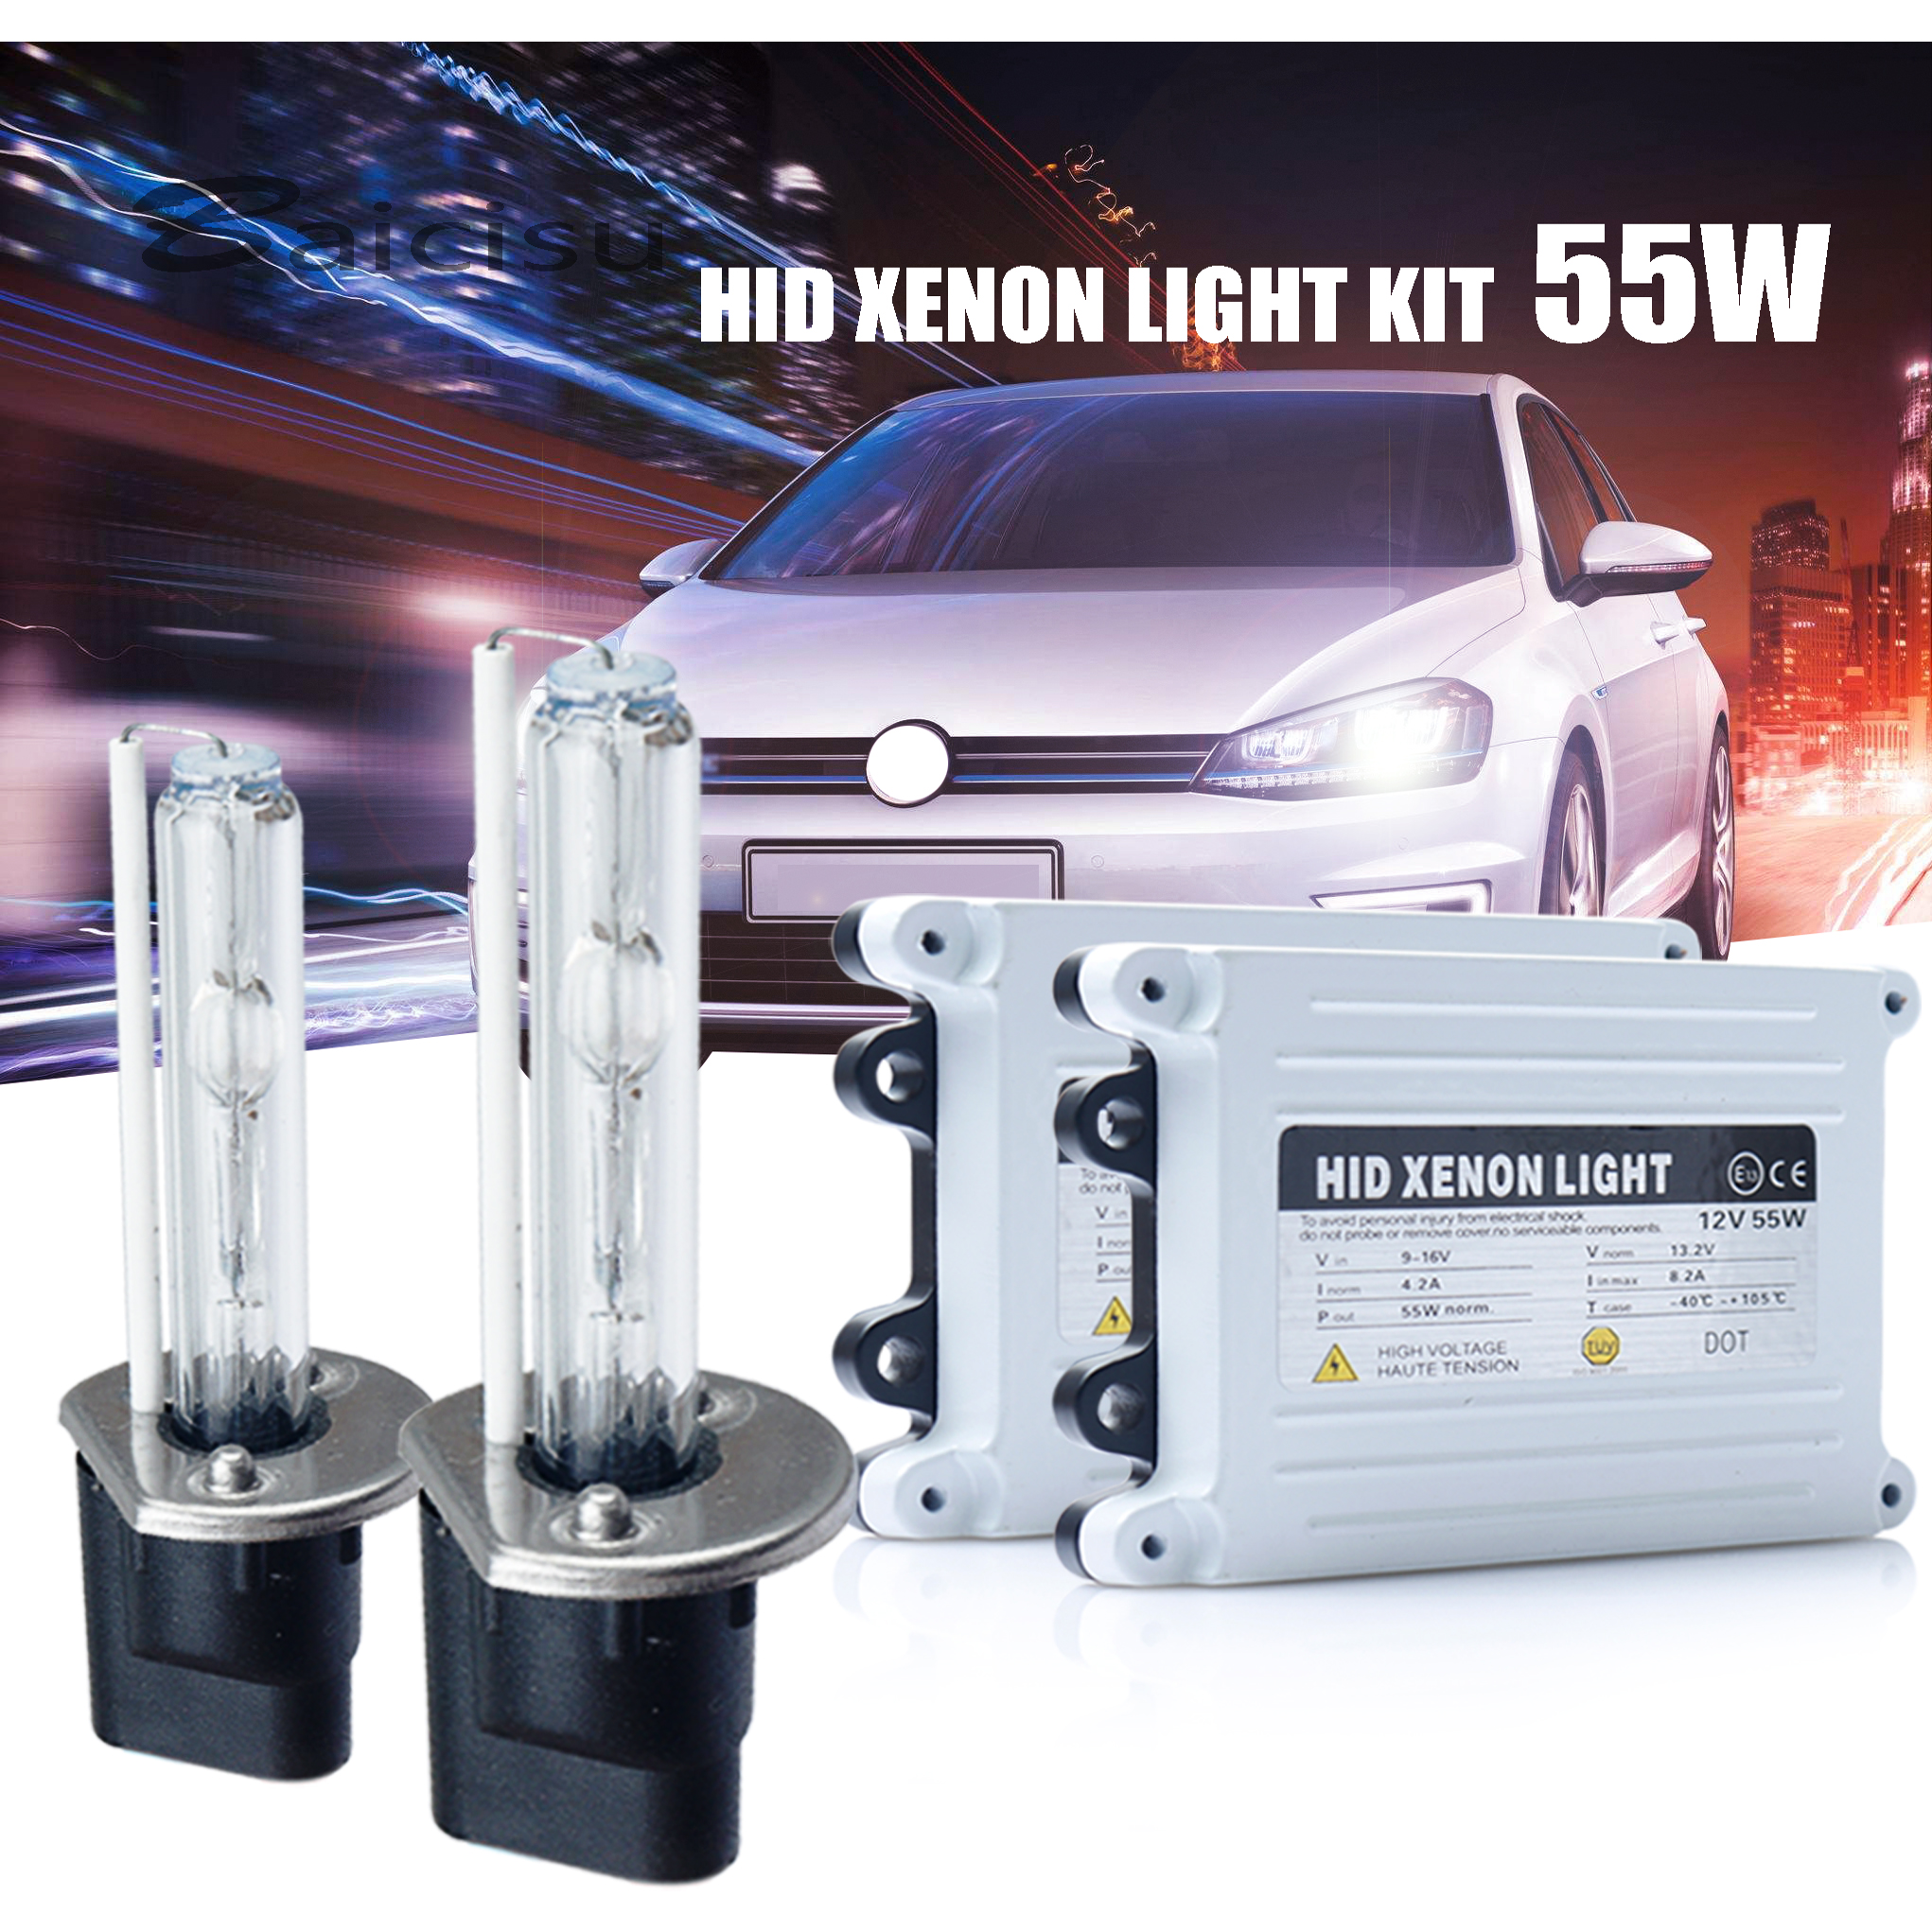 55W HID Xenon <font><b>H7</b></font> Kit 12V AC Fast Start Hid <font><b>H7</b></font> Xenon Kit 55W H1 H3 H4 H11 9005 9006 H27 For Car Headlight 5000k 6000k 8000k 12V image